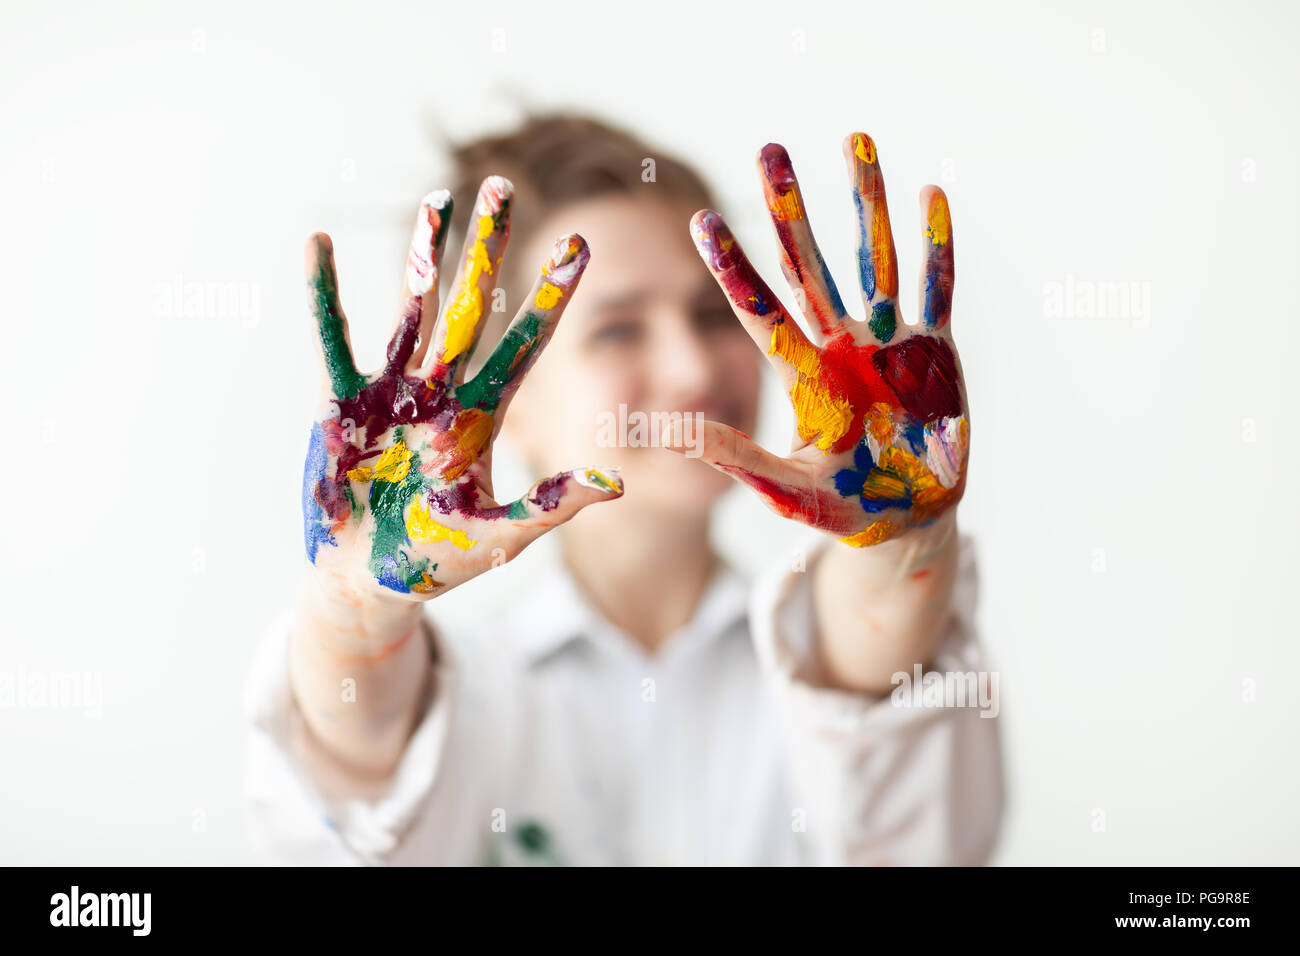 Happy woman showing hands painted in colorful paints on white background. Fun concept - Stock Image